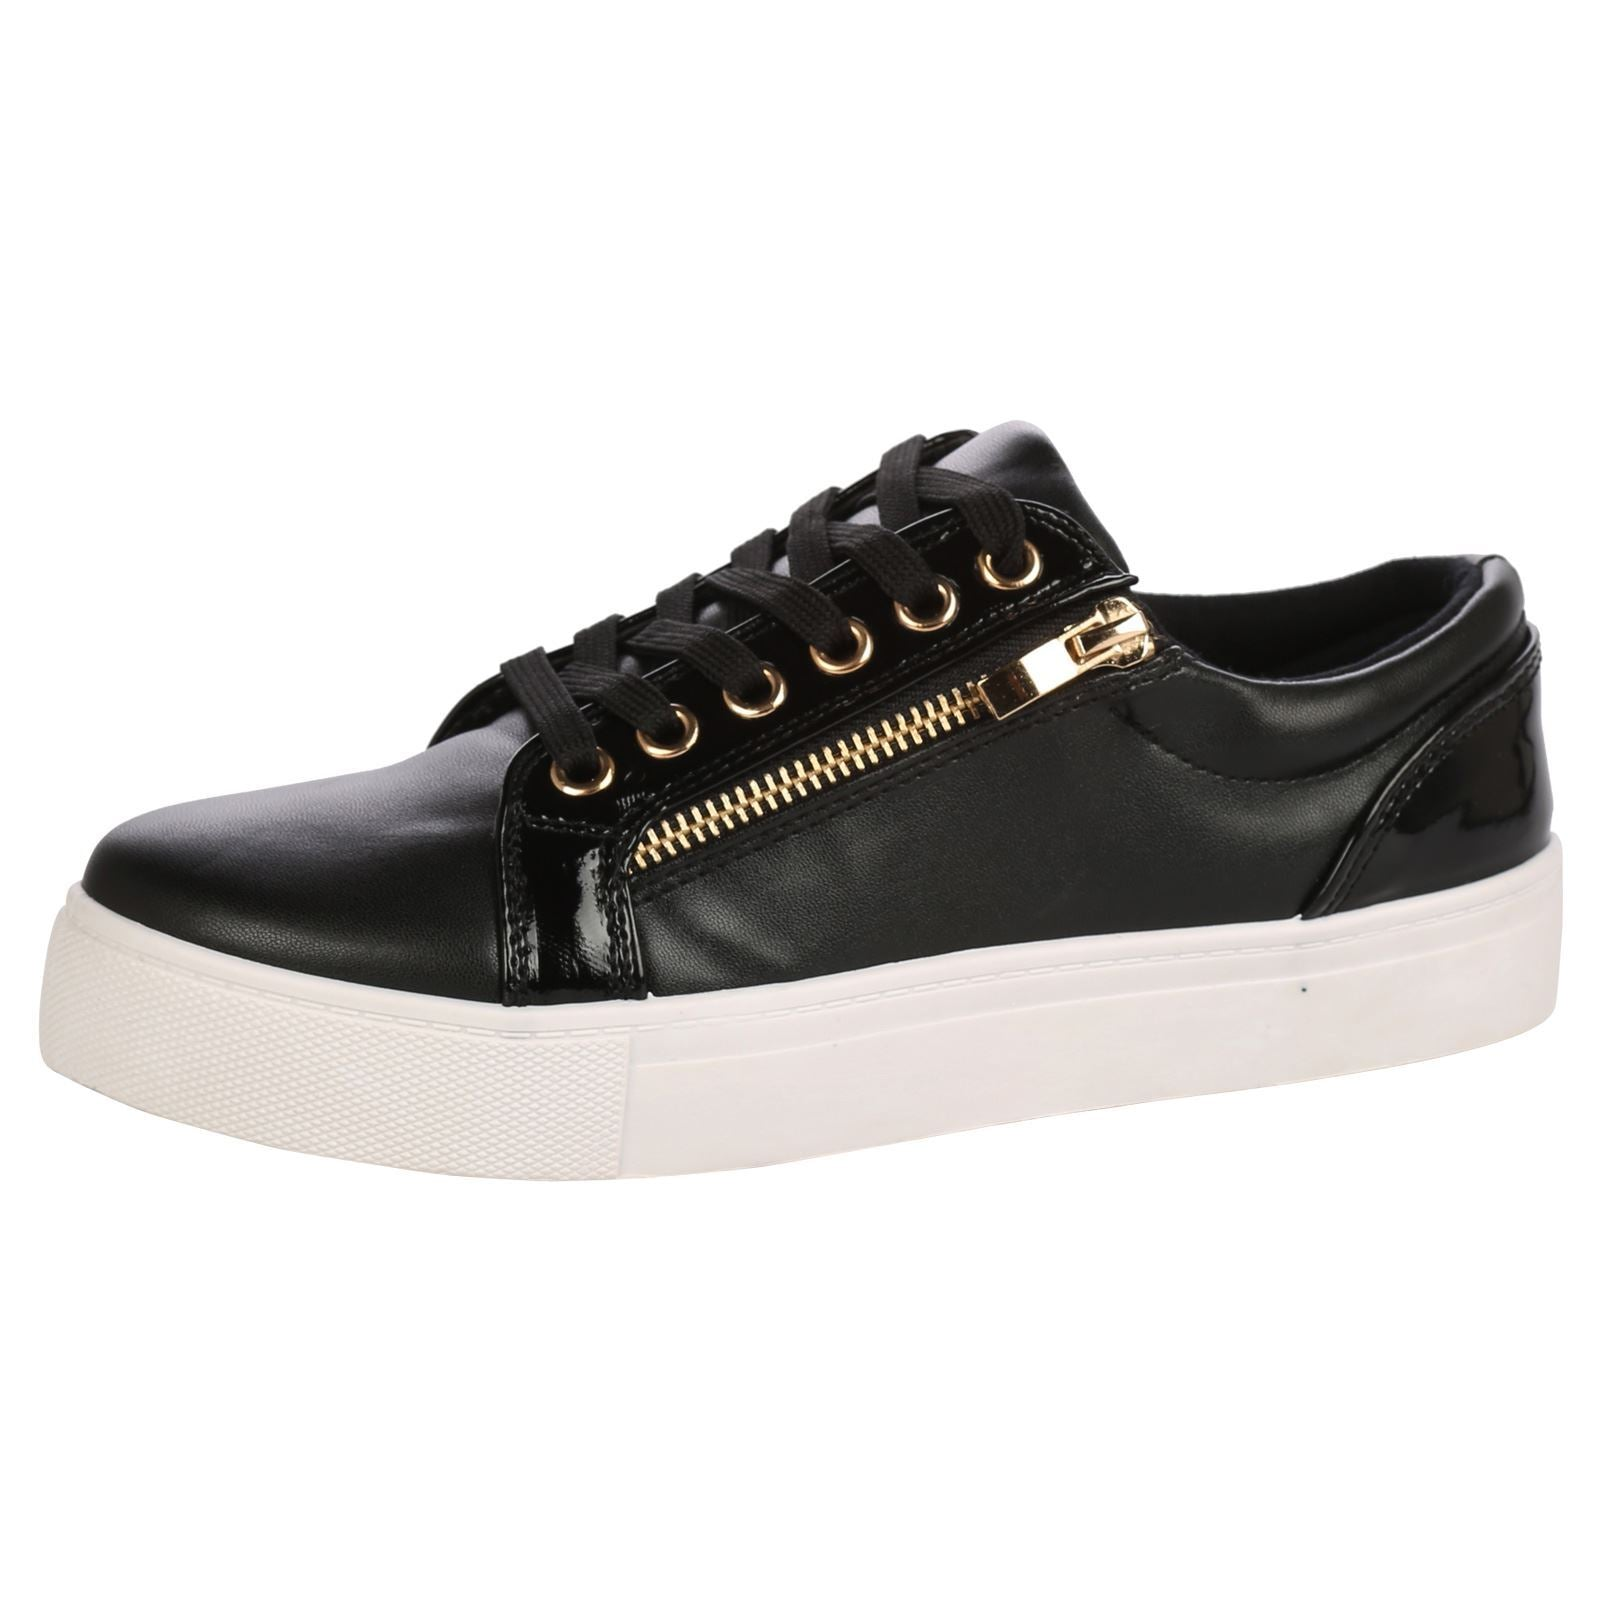 Rowena Lace Up Skater Trainers in Black Faux Leather